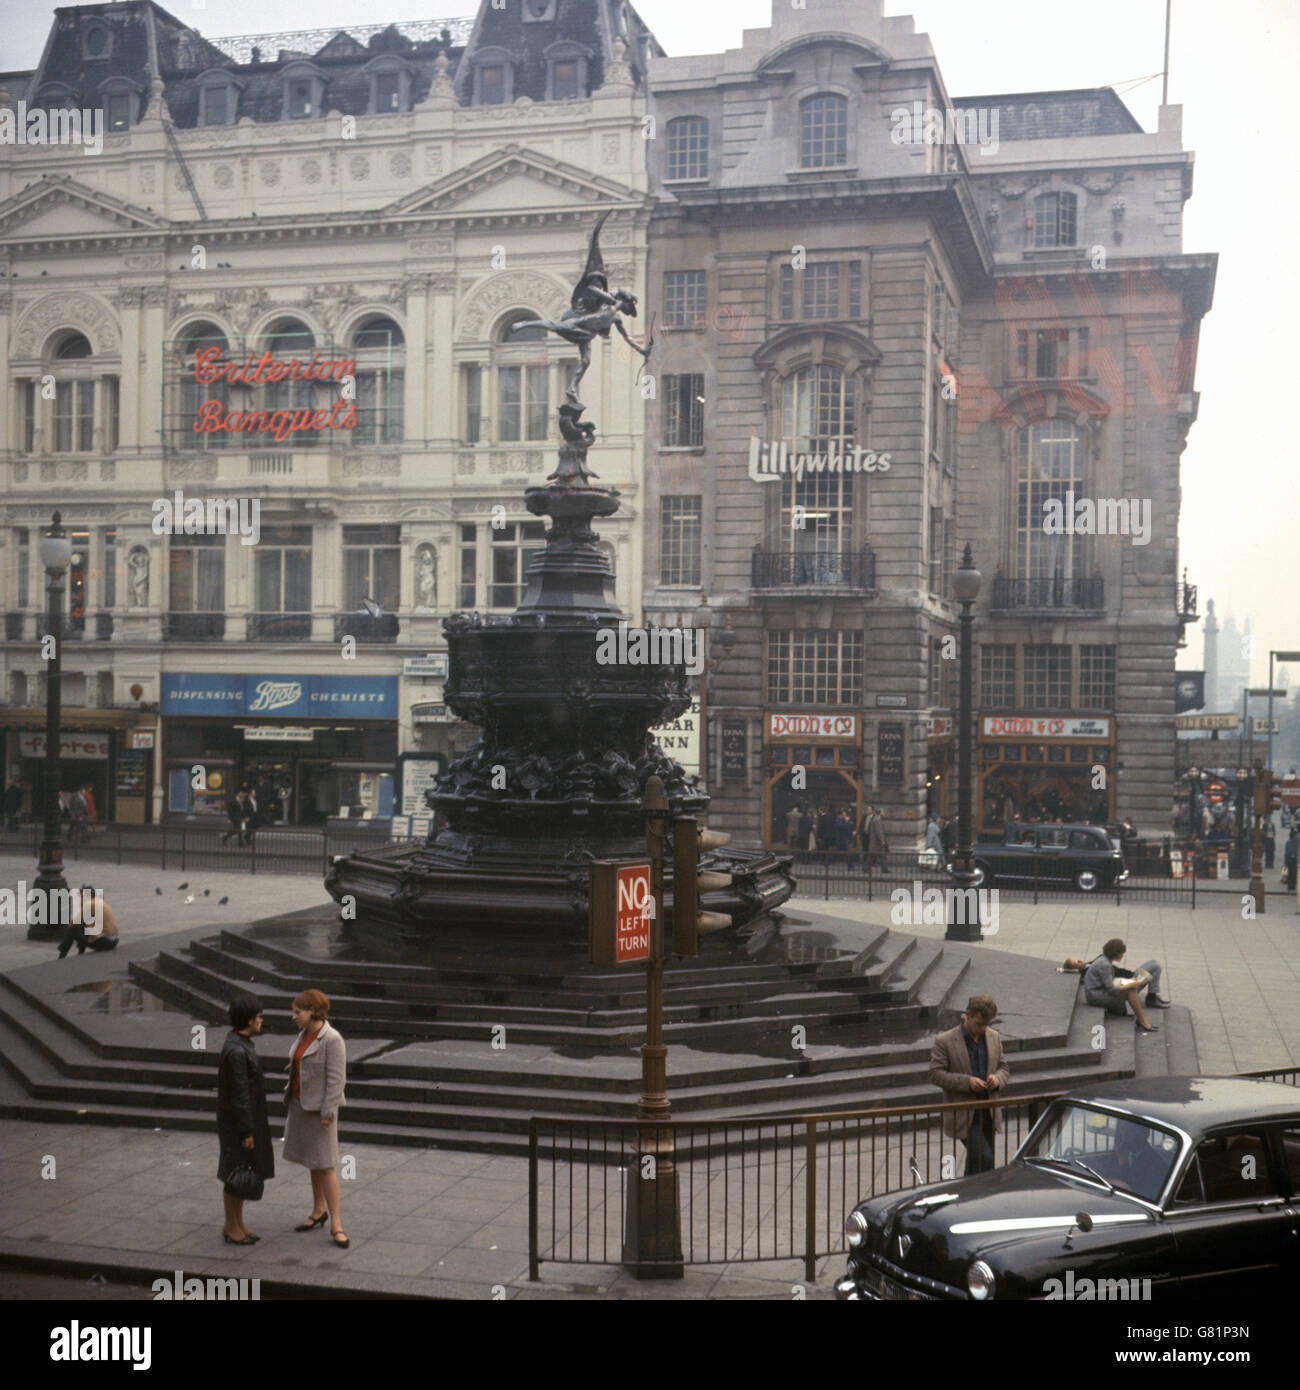 London Scenes - Piccadilly Circus - Stock Image